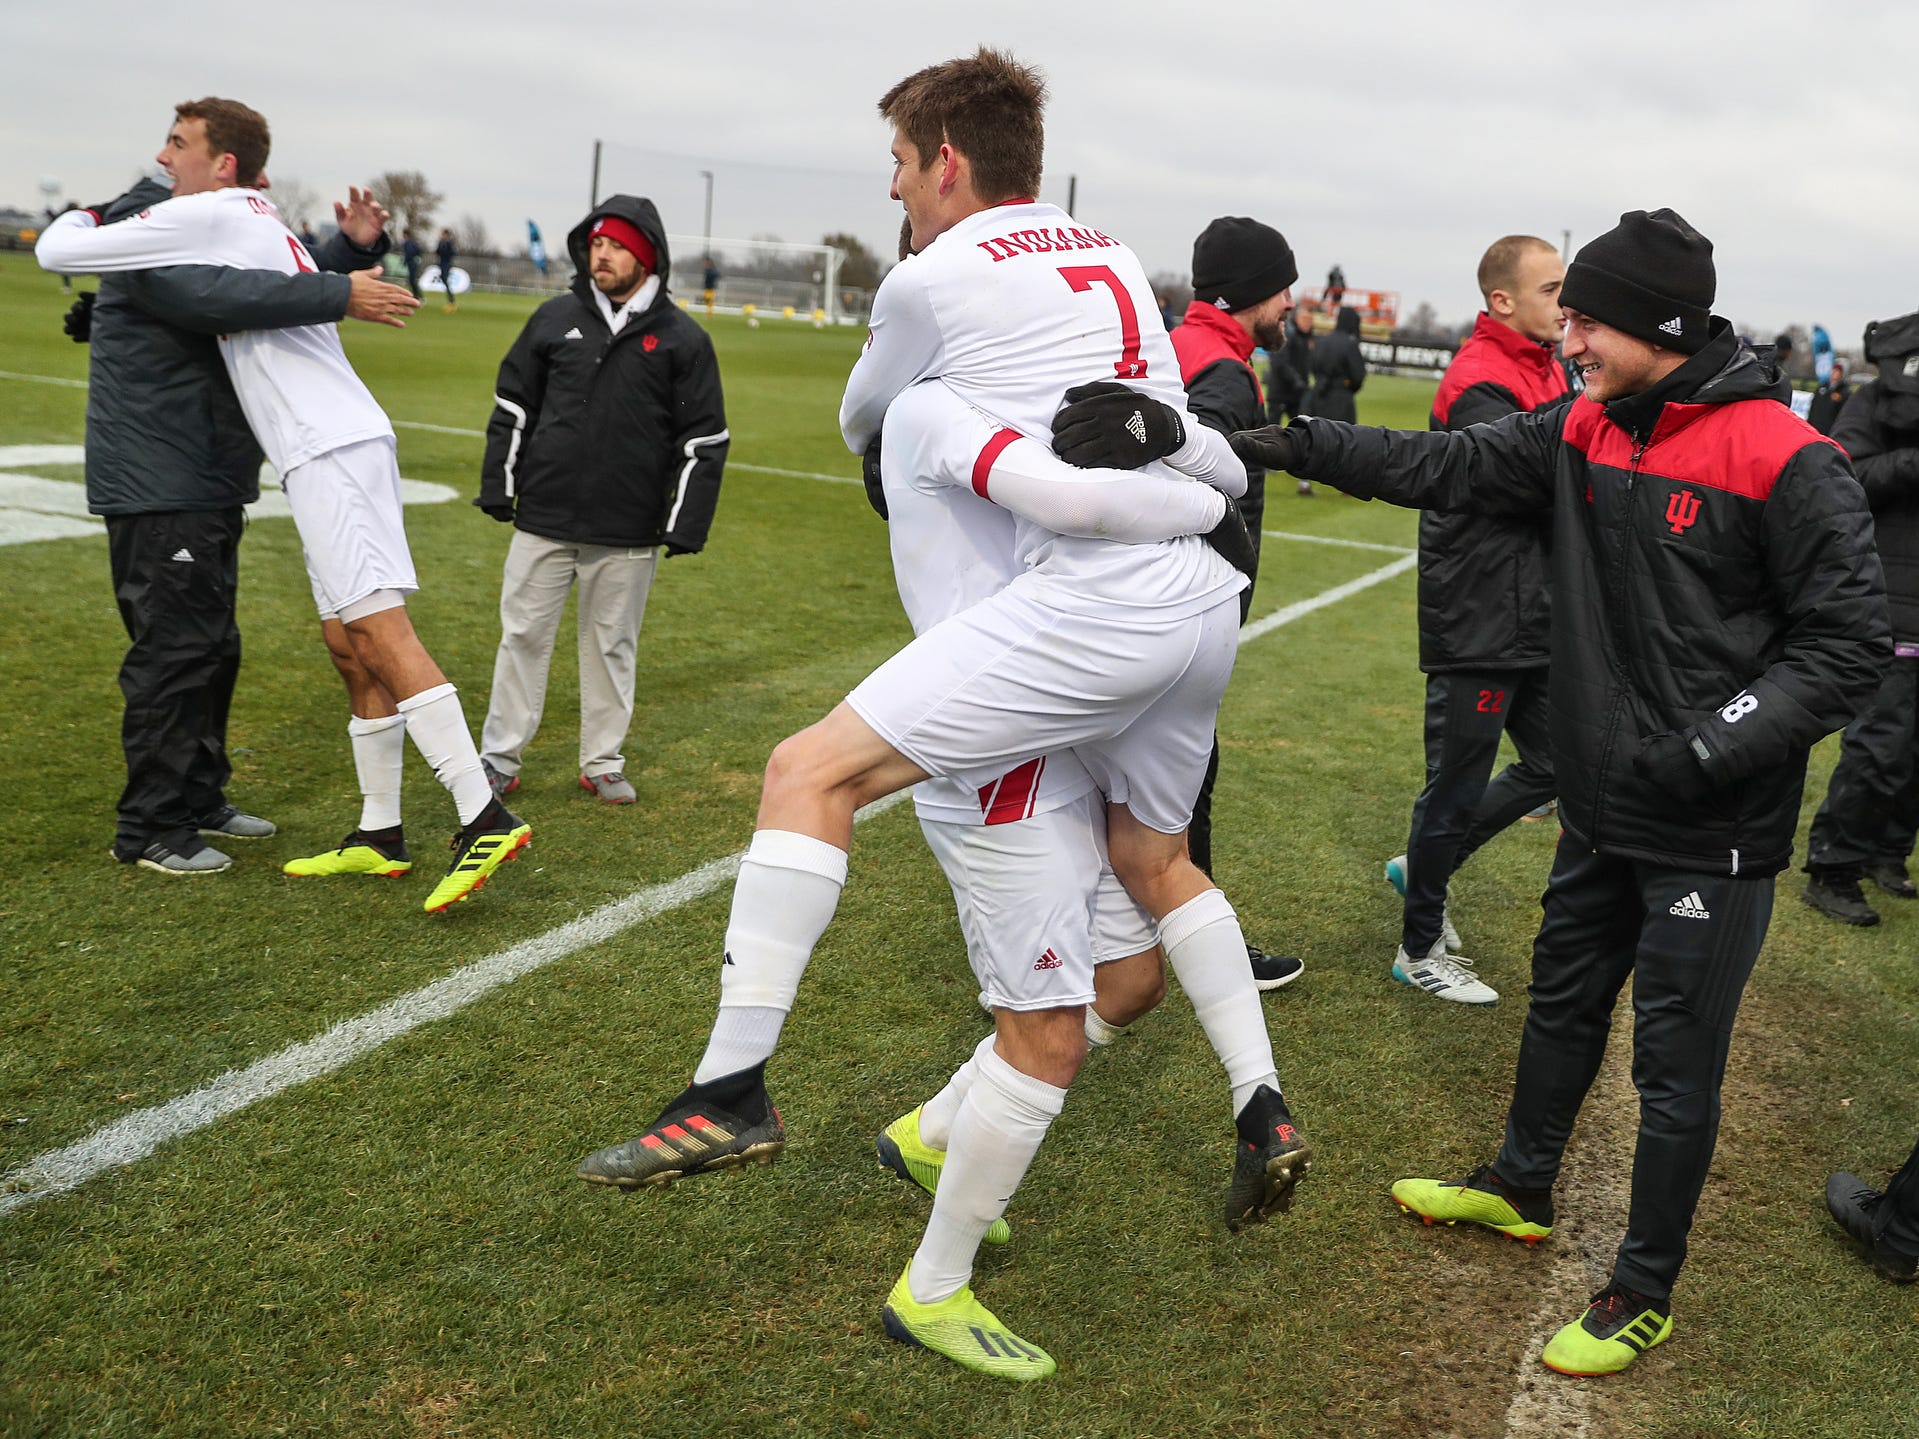 The Indiana Hoosiers celebrate defeating the Maryland Terrapins in Big Ten semifinals at Grand Park in Westfield, Ind., Friday, Nov. 9, 2018. Indiana and Maryland tied 1-1, with the Hoosiers clinching the win in penalty kicks, 4-3.